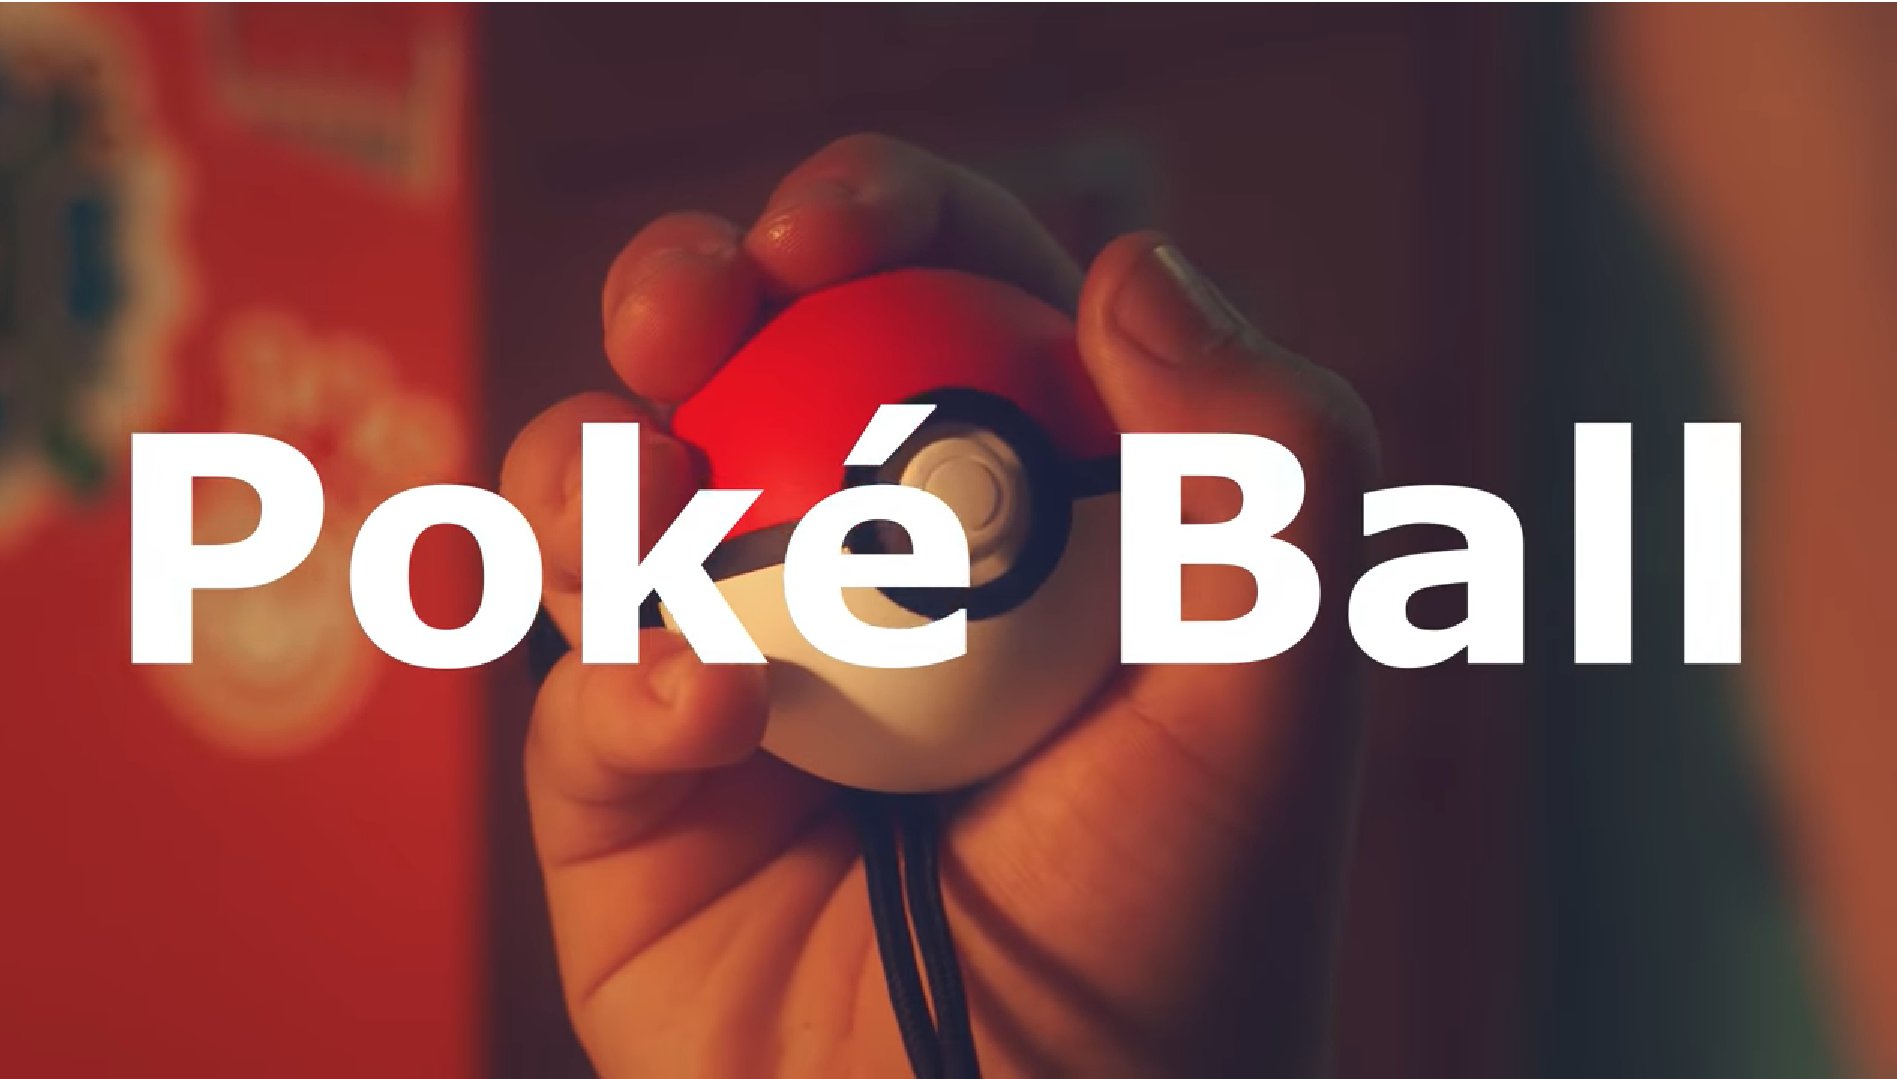 Pokeball Releasing Pokemon